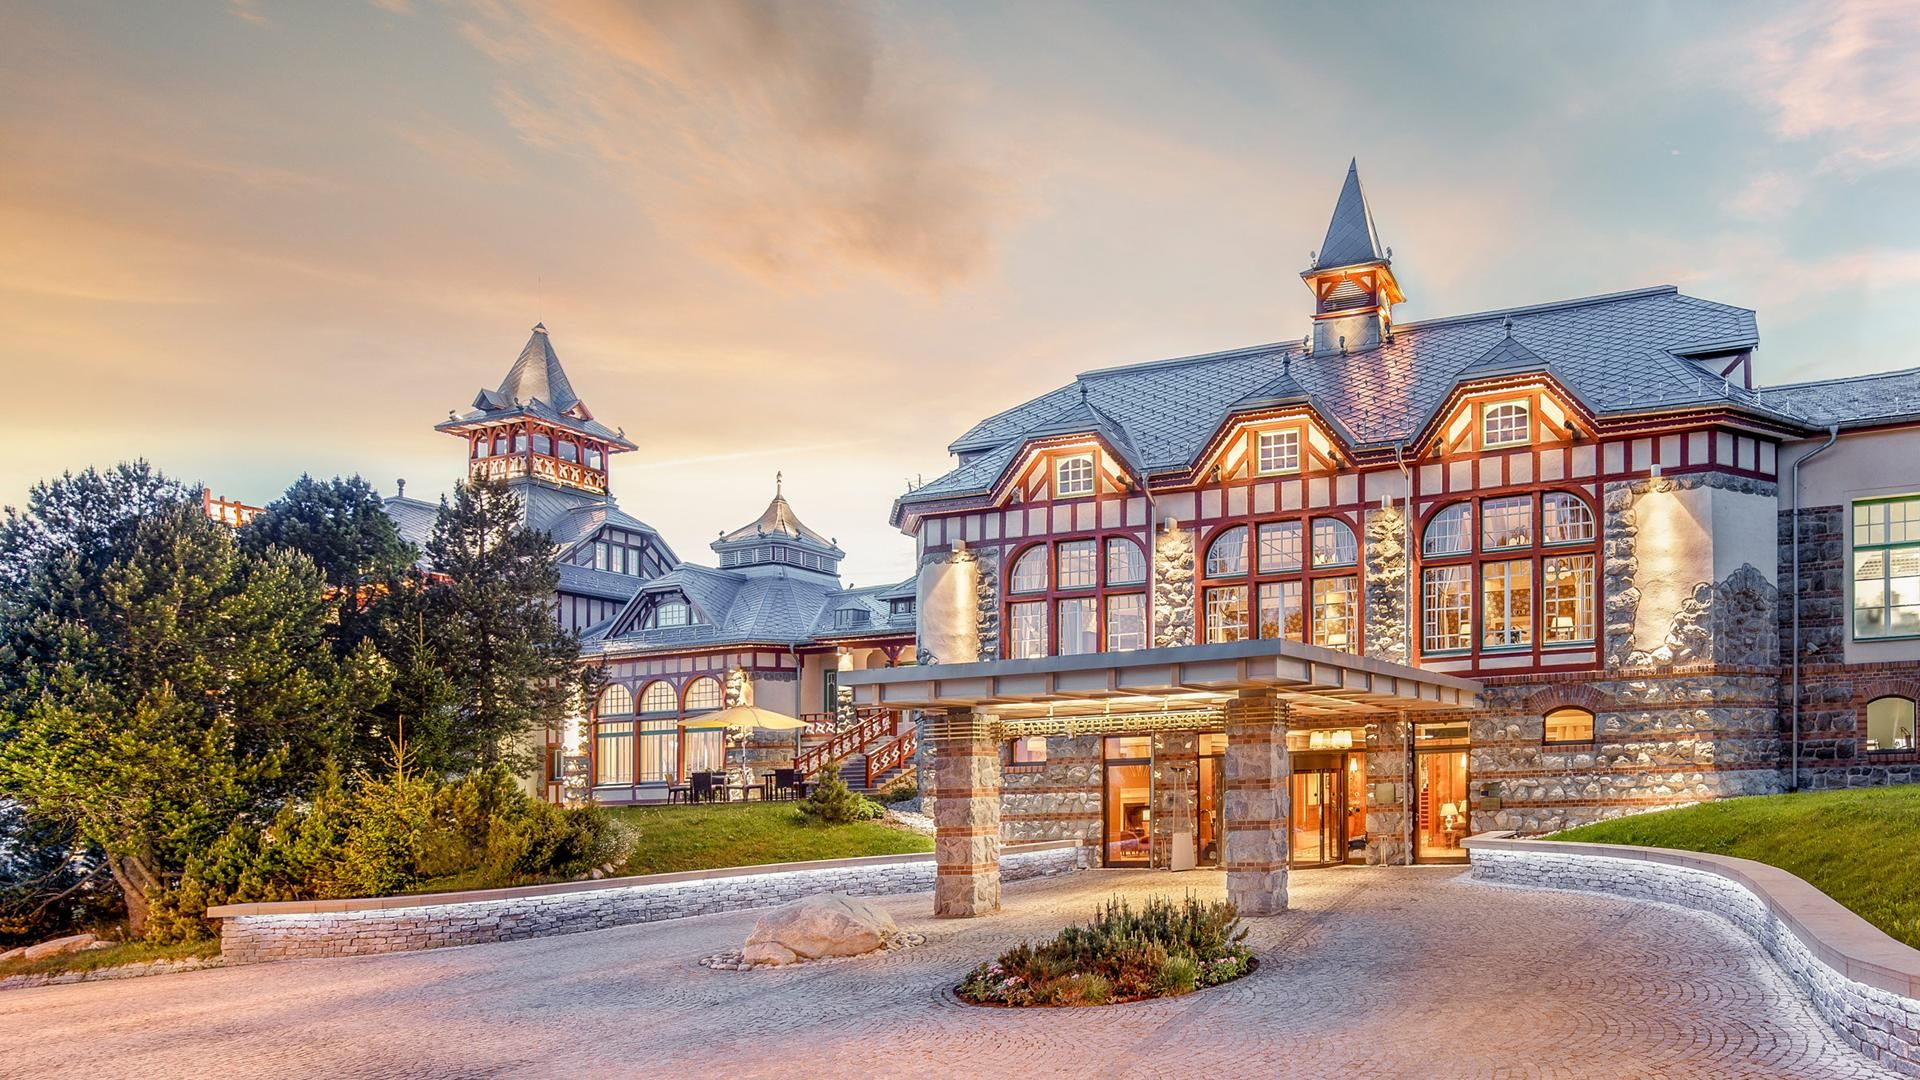 Book A Stay At Grand Hotel Kempinski High Tatras Located In Strbske Pleso Slovakia And Enjoy 5 Star Luxury Book Direct For The B Grand Hotel High Tatras Hotel